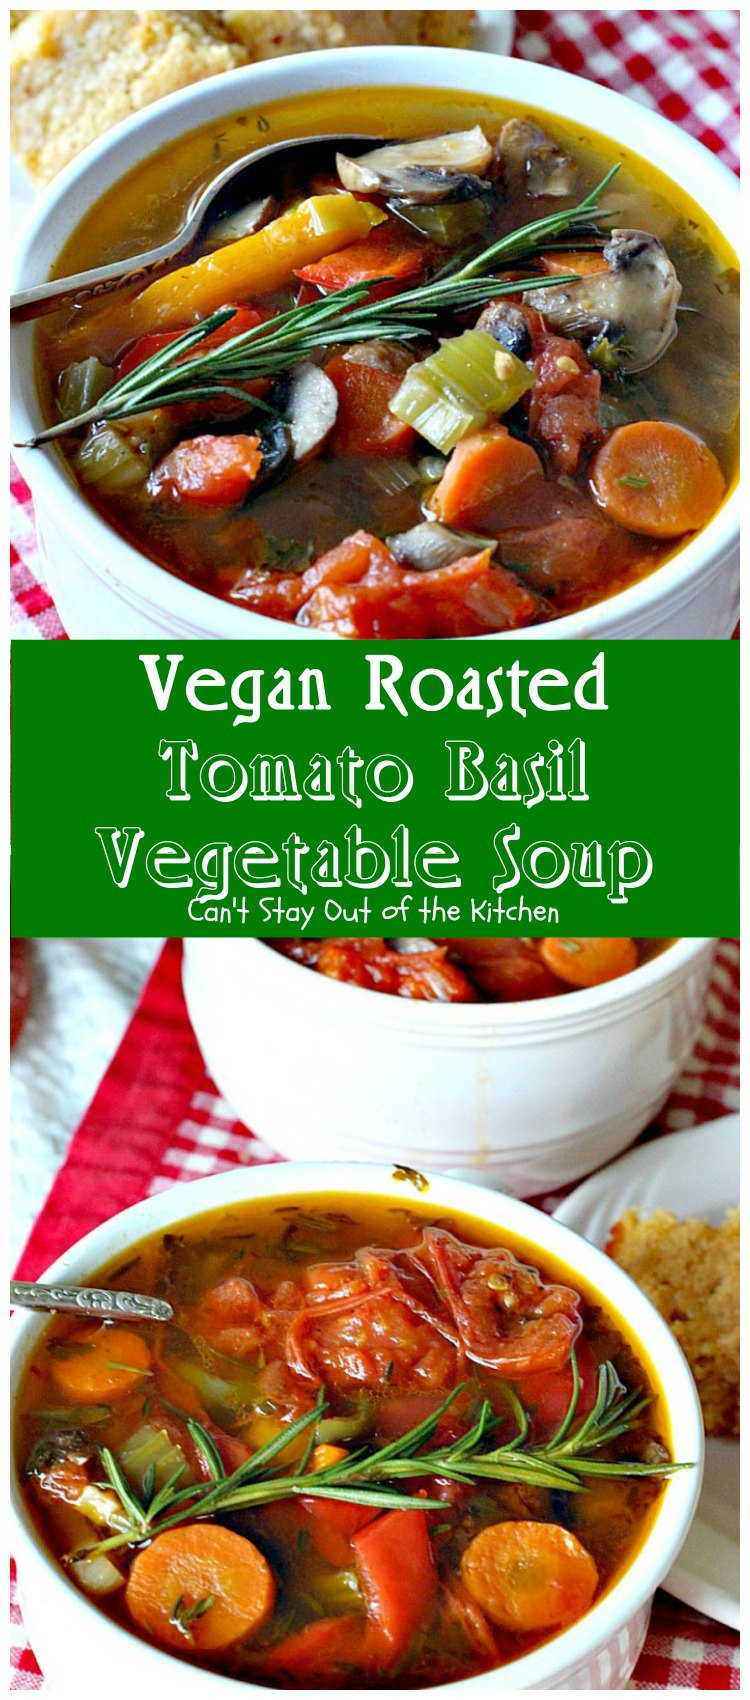 Vegan Roasted Tomato Basil Vegetable Soup | Can't Stay Out of the ...